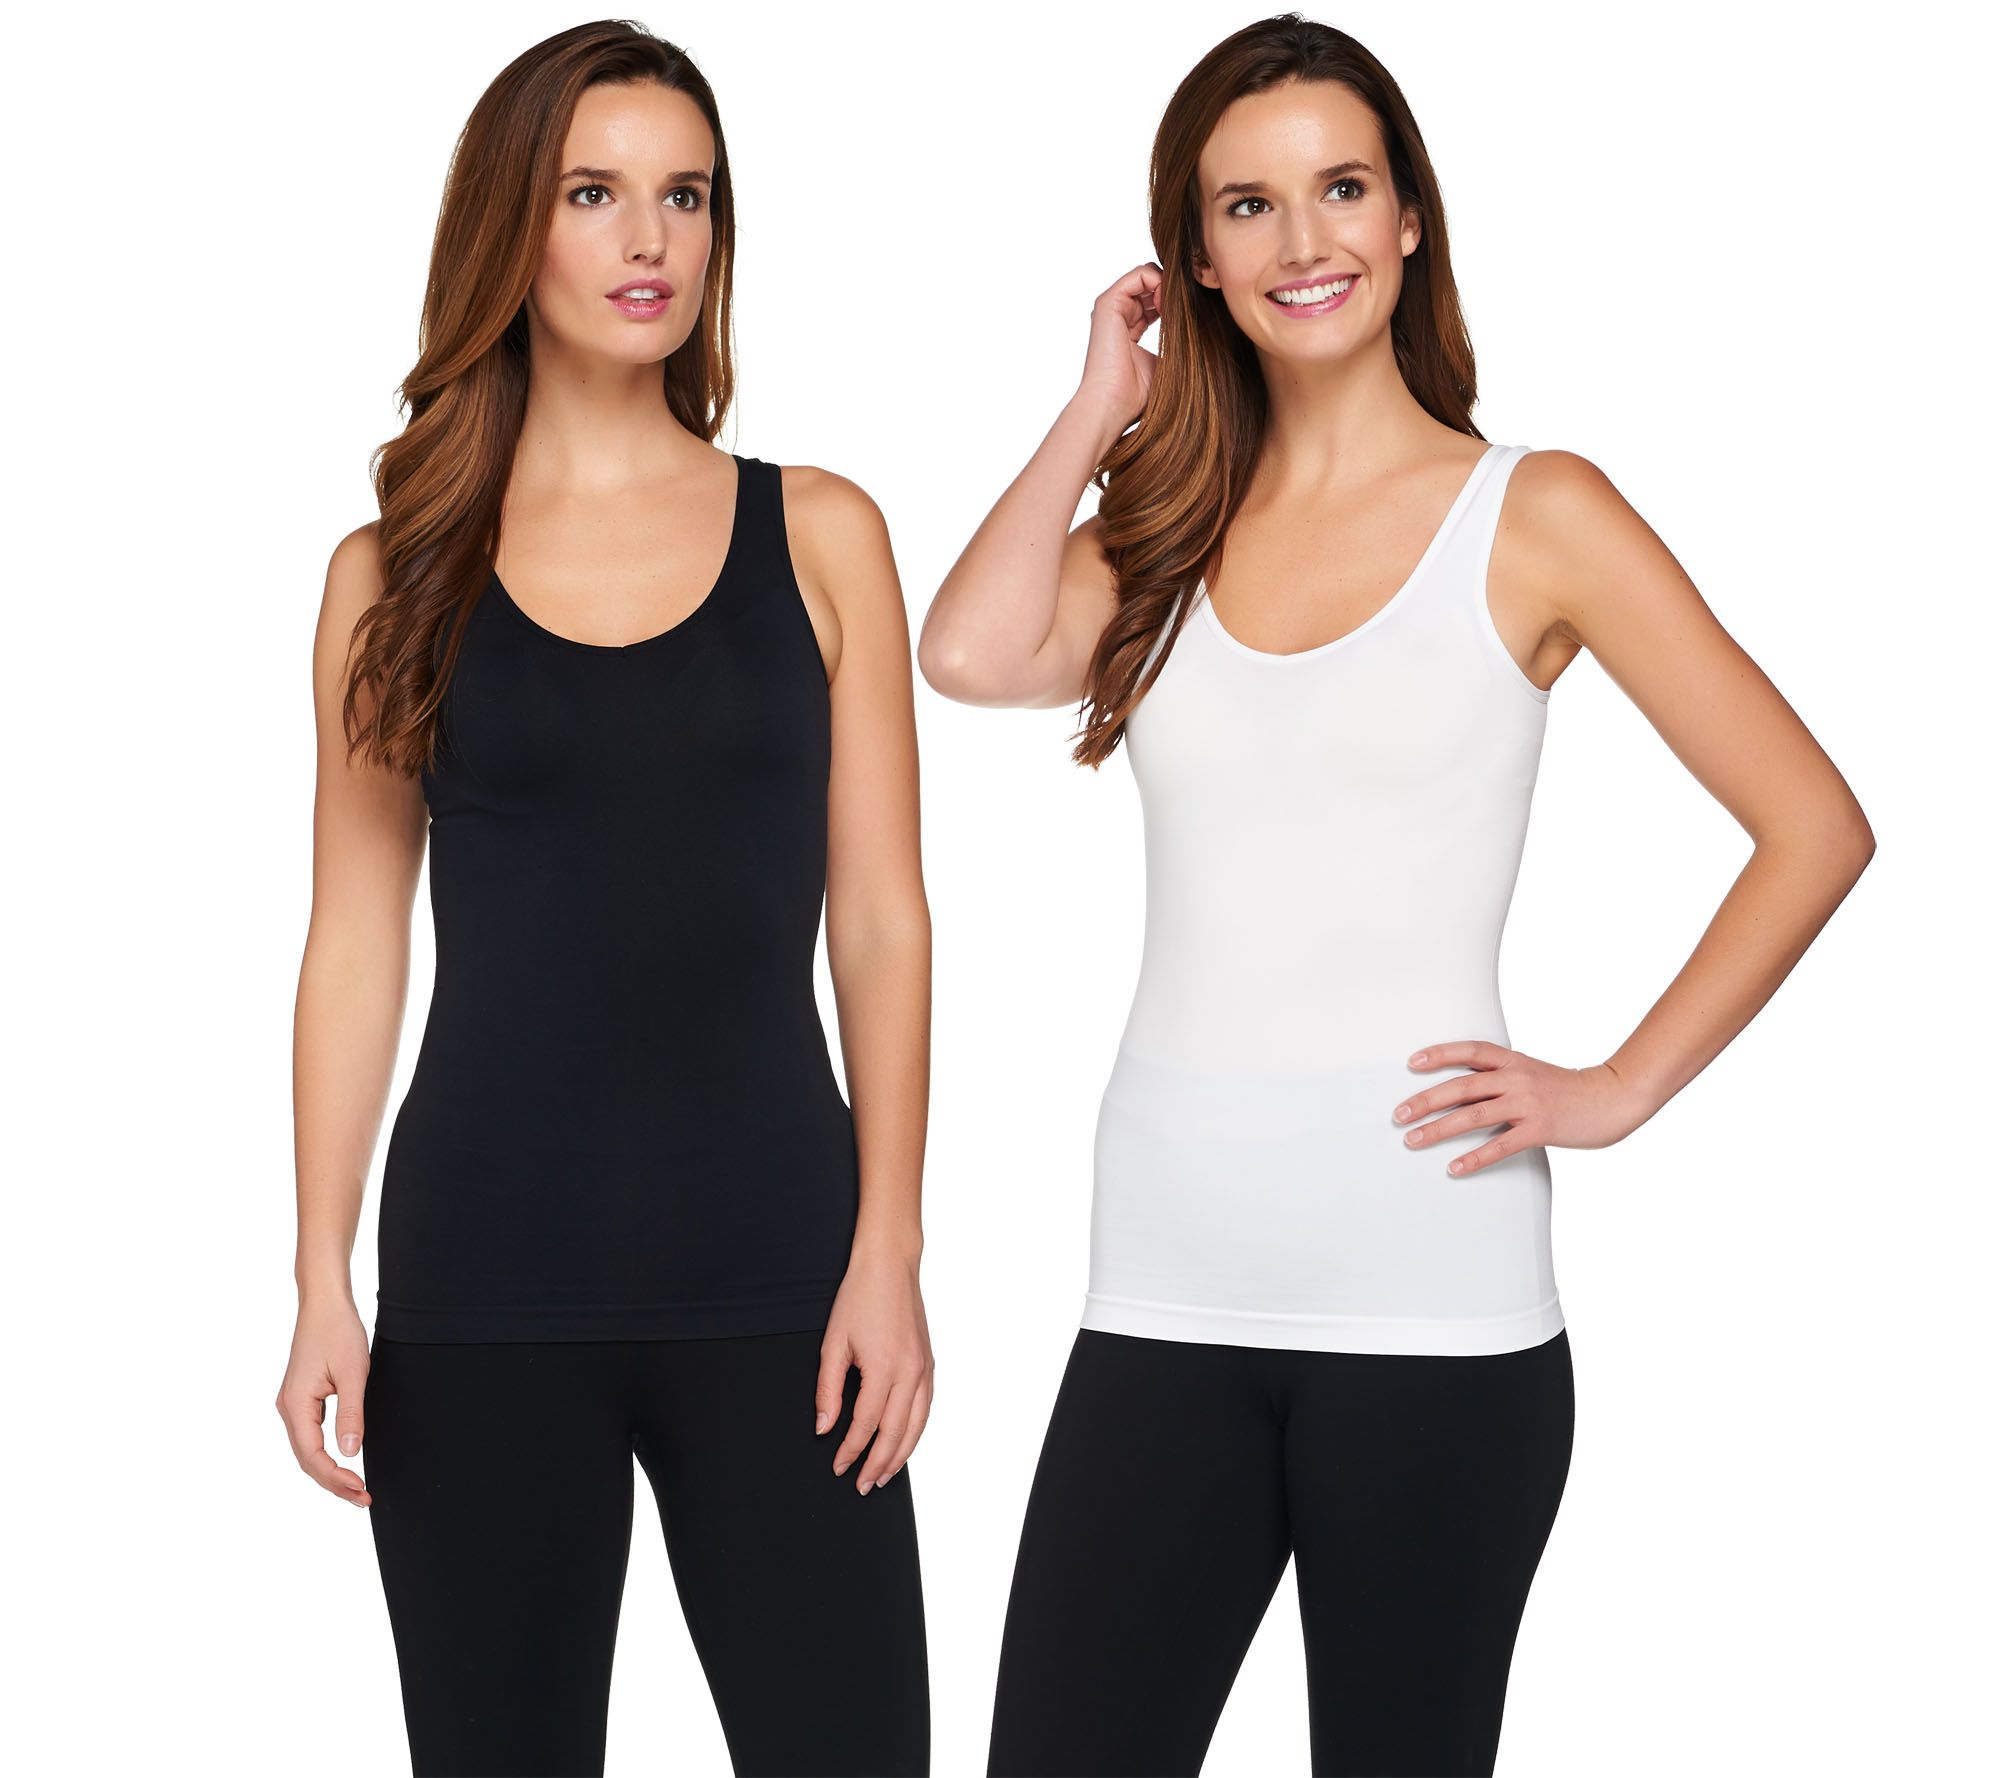 ee4098102e609 Breezies Set of 2 Reversible Seamless Tanks - Page 1 — QVC.com